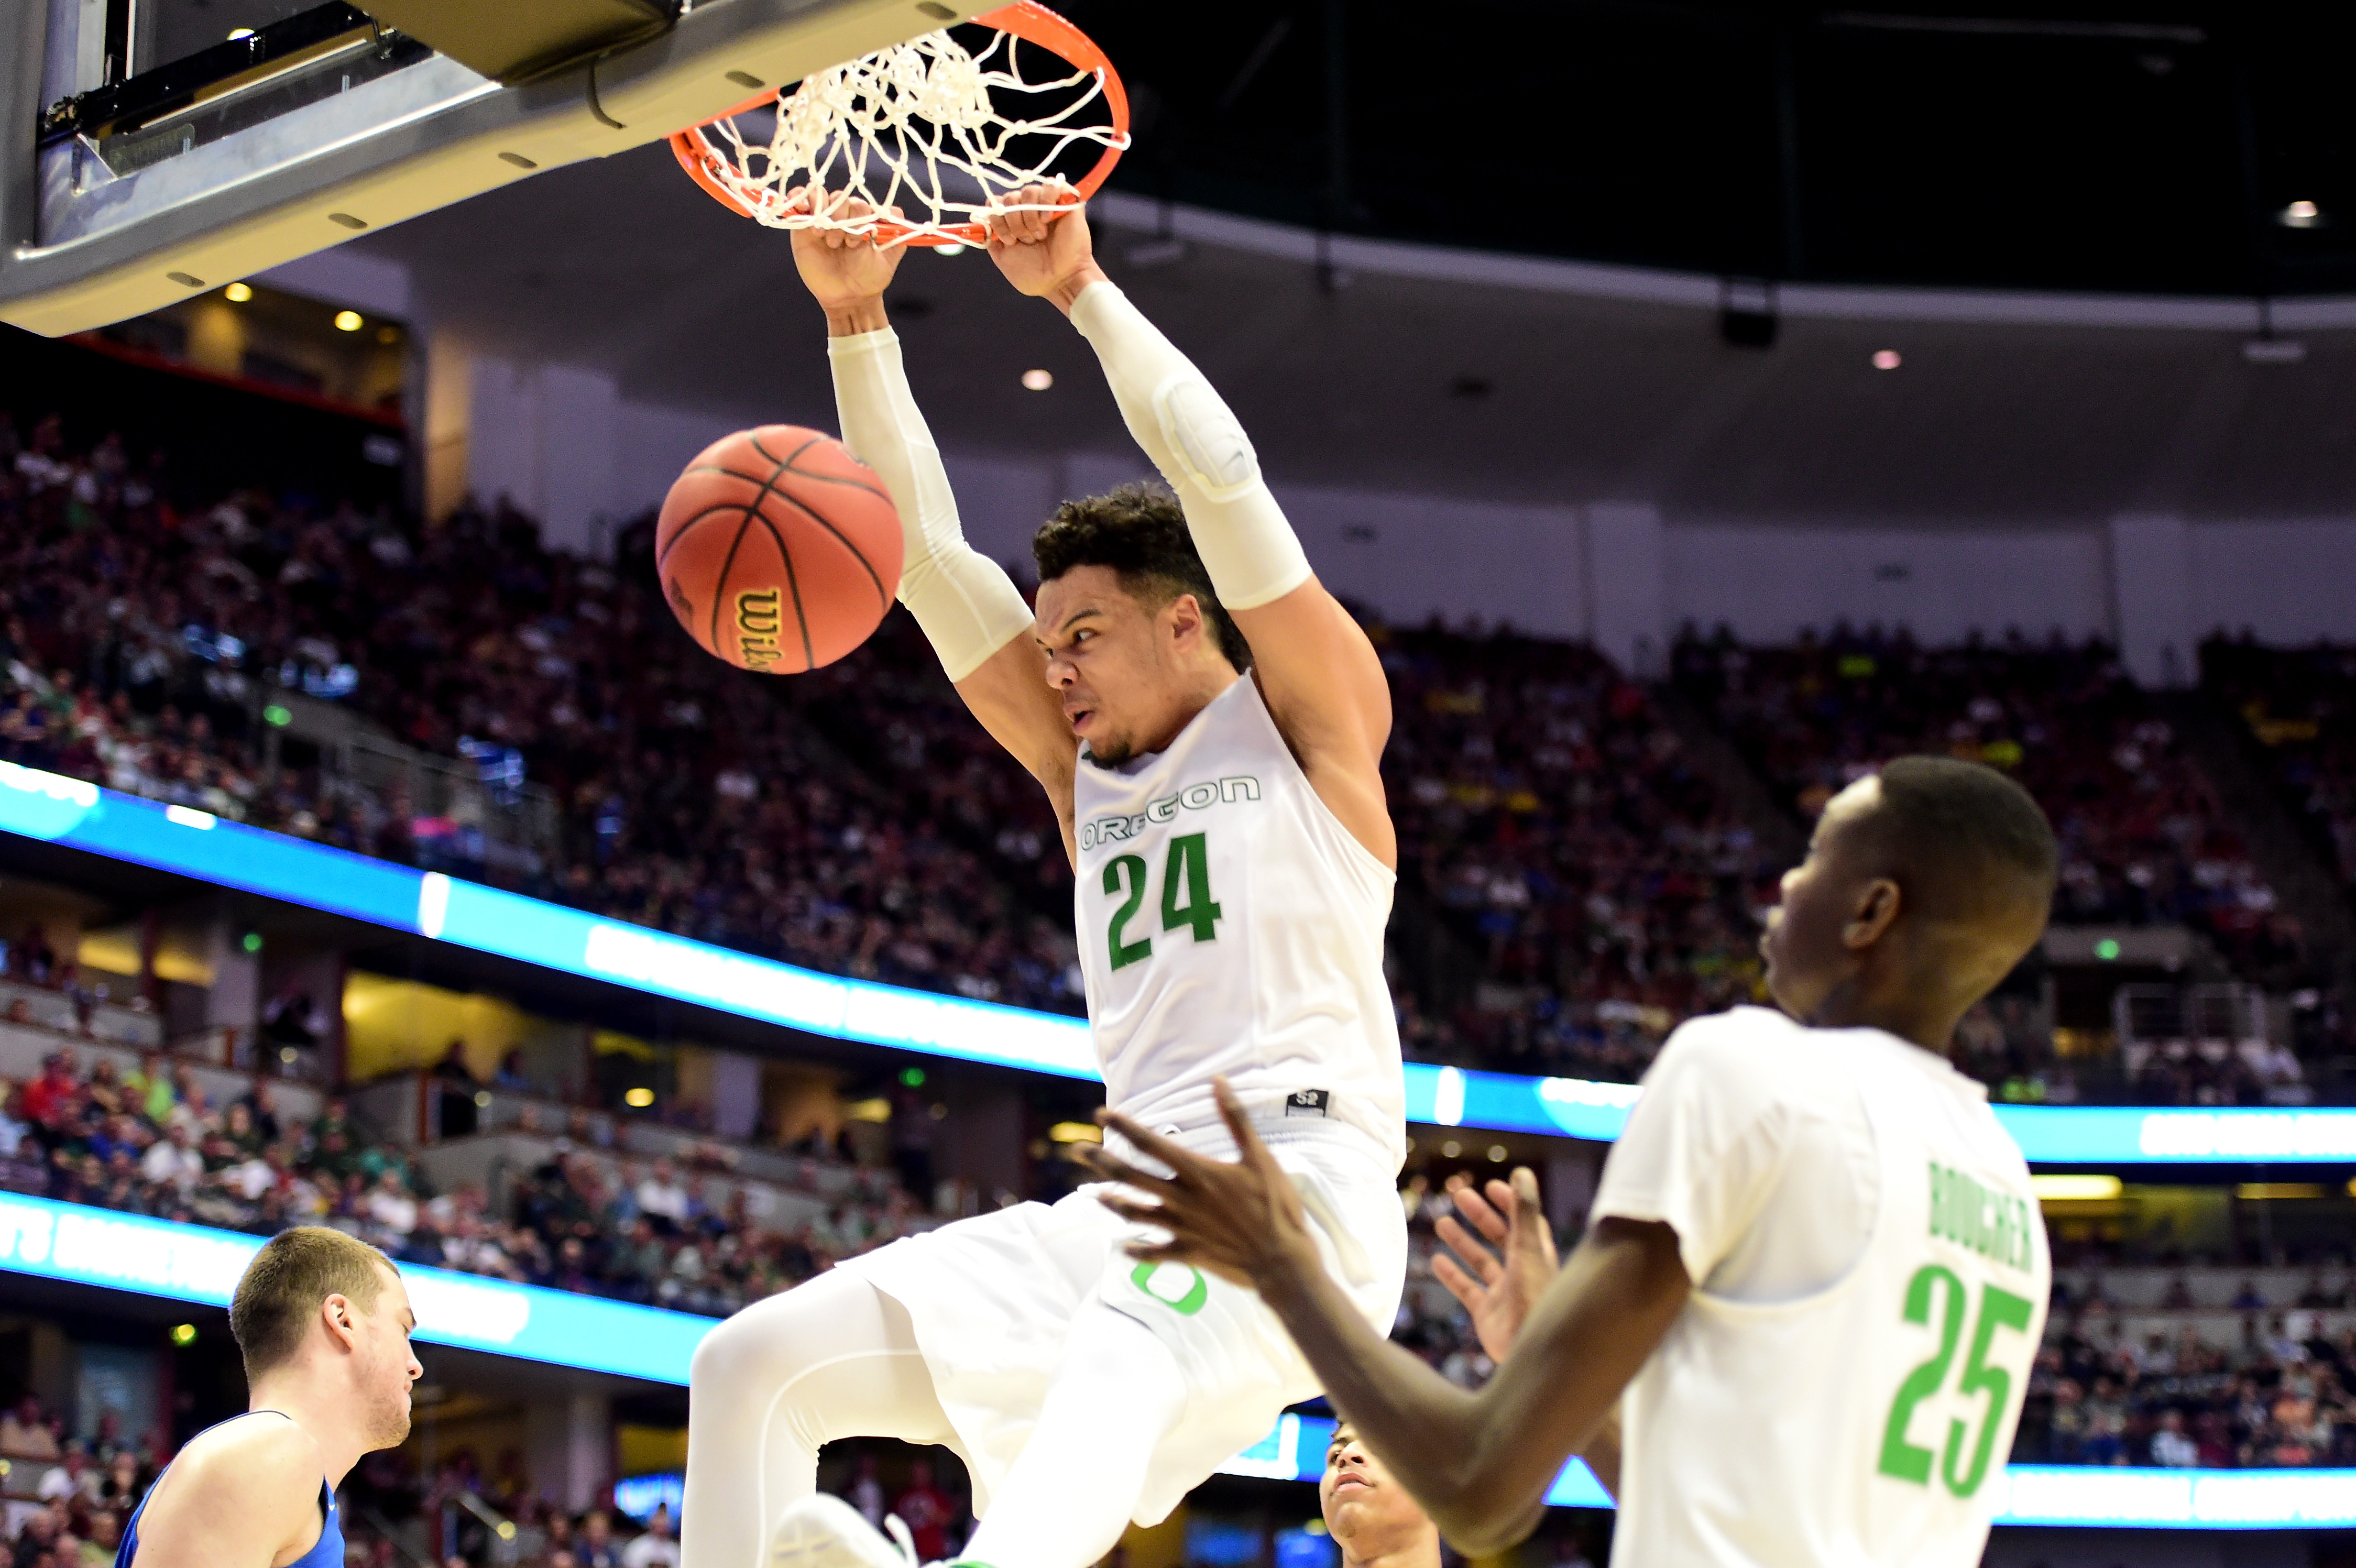 ANAHEIM, CA - MARCH 24: Dillon Brooks #24 of the Oregon Ducks dunks the ball in the first half while taking on the Duke Blue Devils in the 2016 NCAA Men's Basketball Tournament West Regional at the Honda Center on March 24, 2016 in Anaheim, California. (Photo by Harry How/Getty Images)